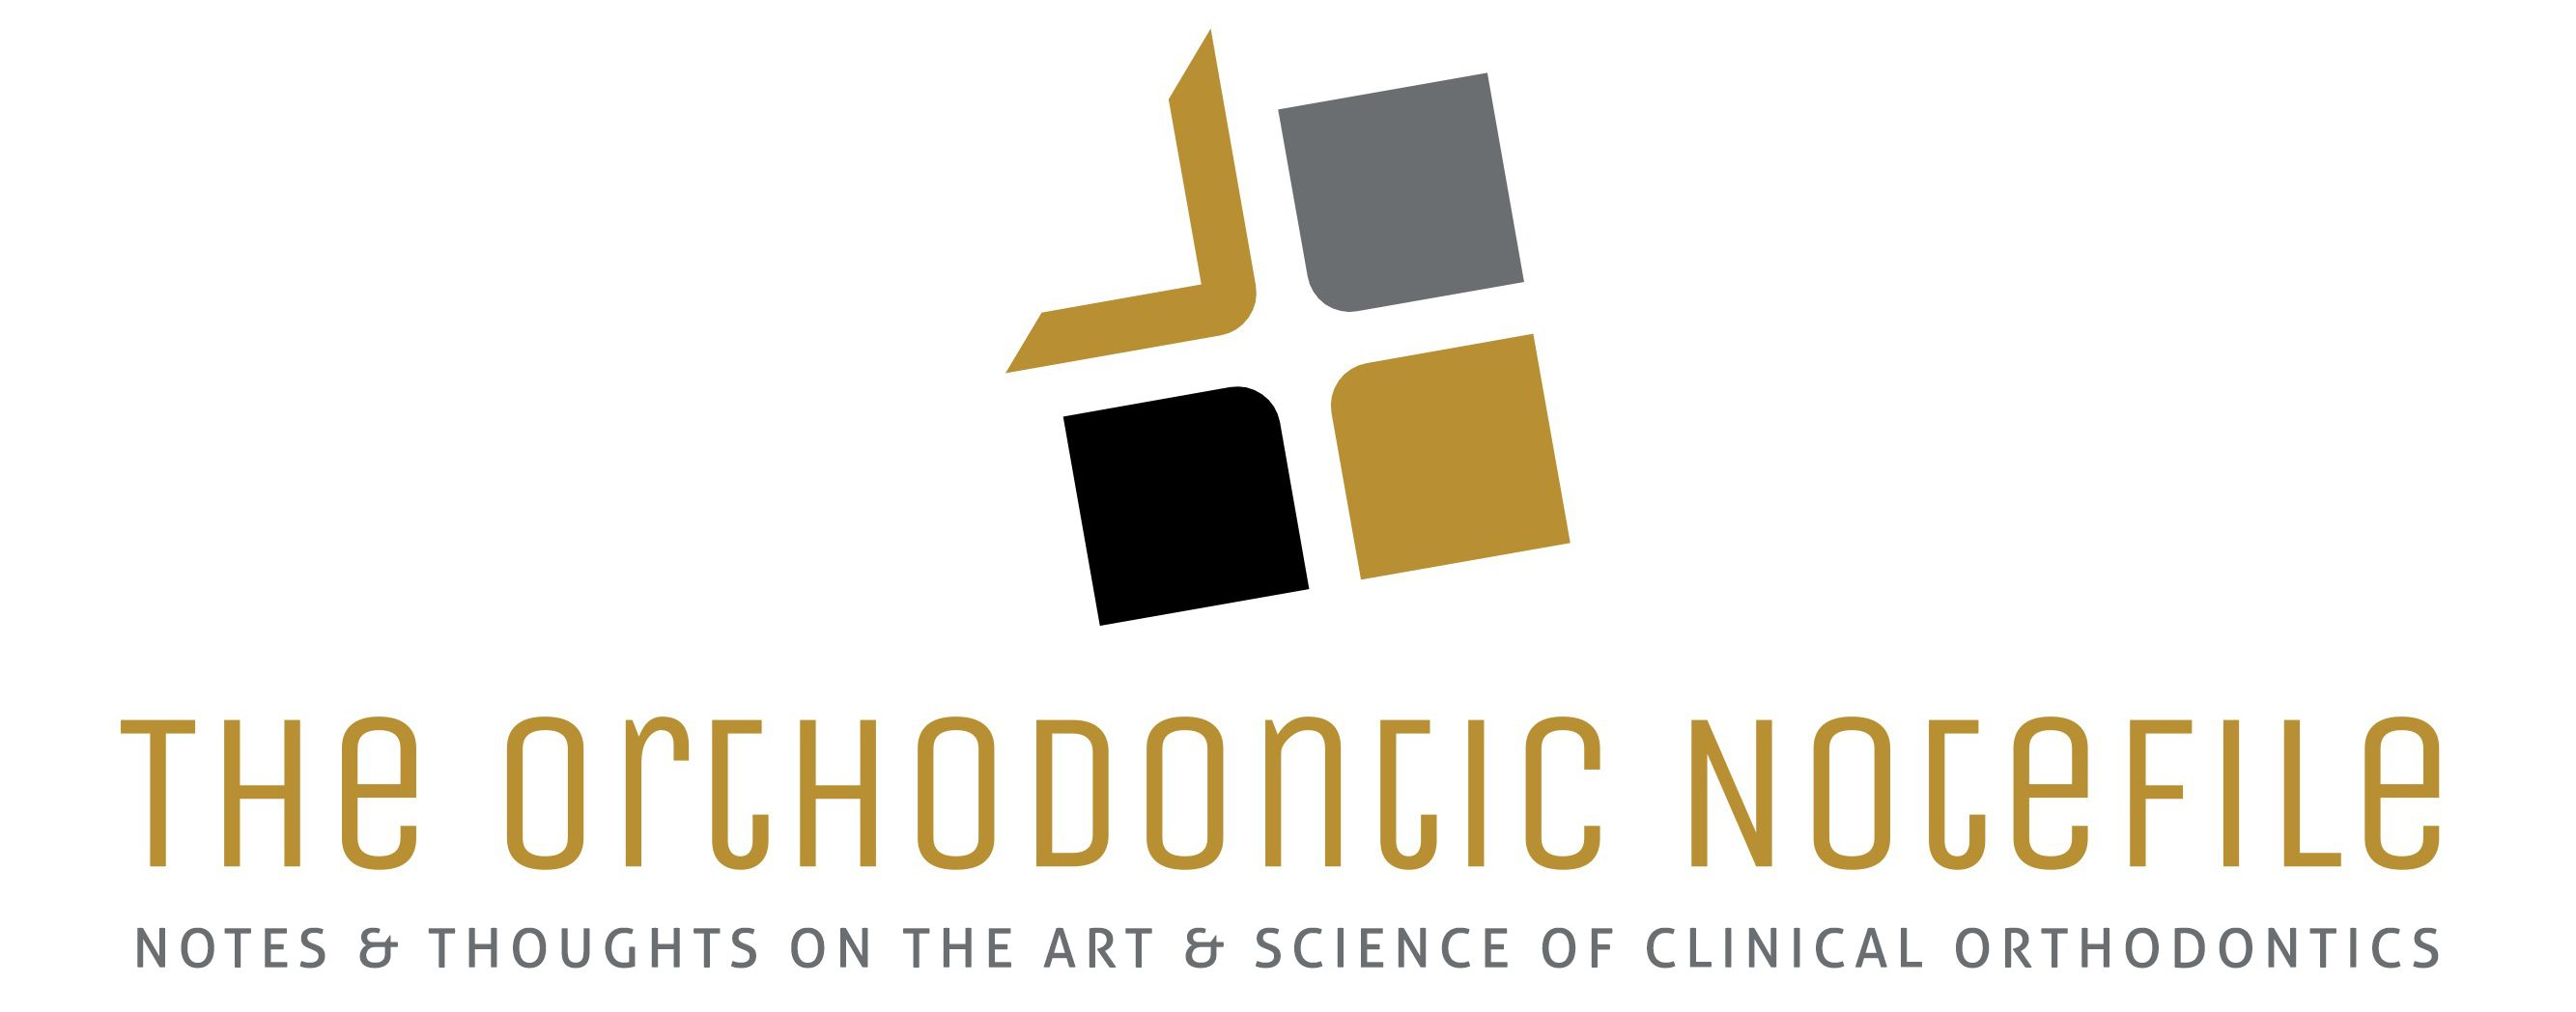 The Orthodontic Notefile; Notes and Thoughts on the Art and Science of Clinical Orthodontics